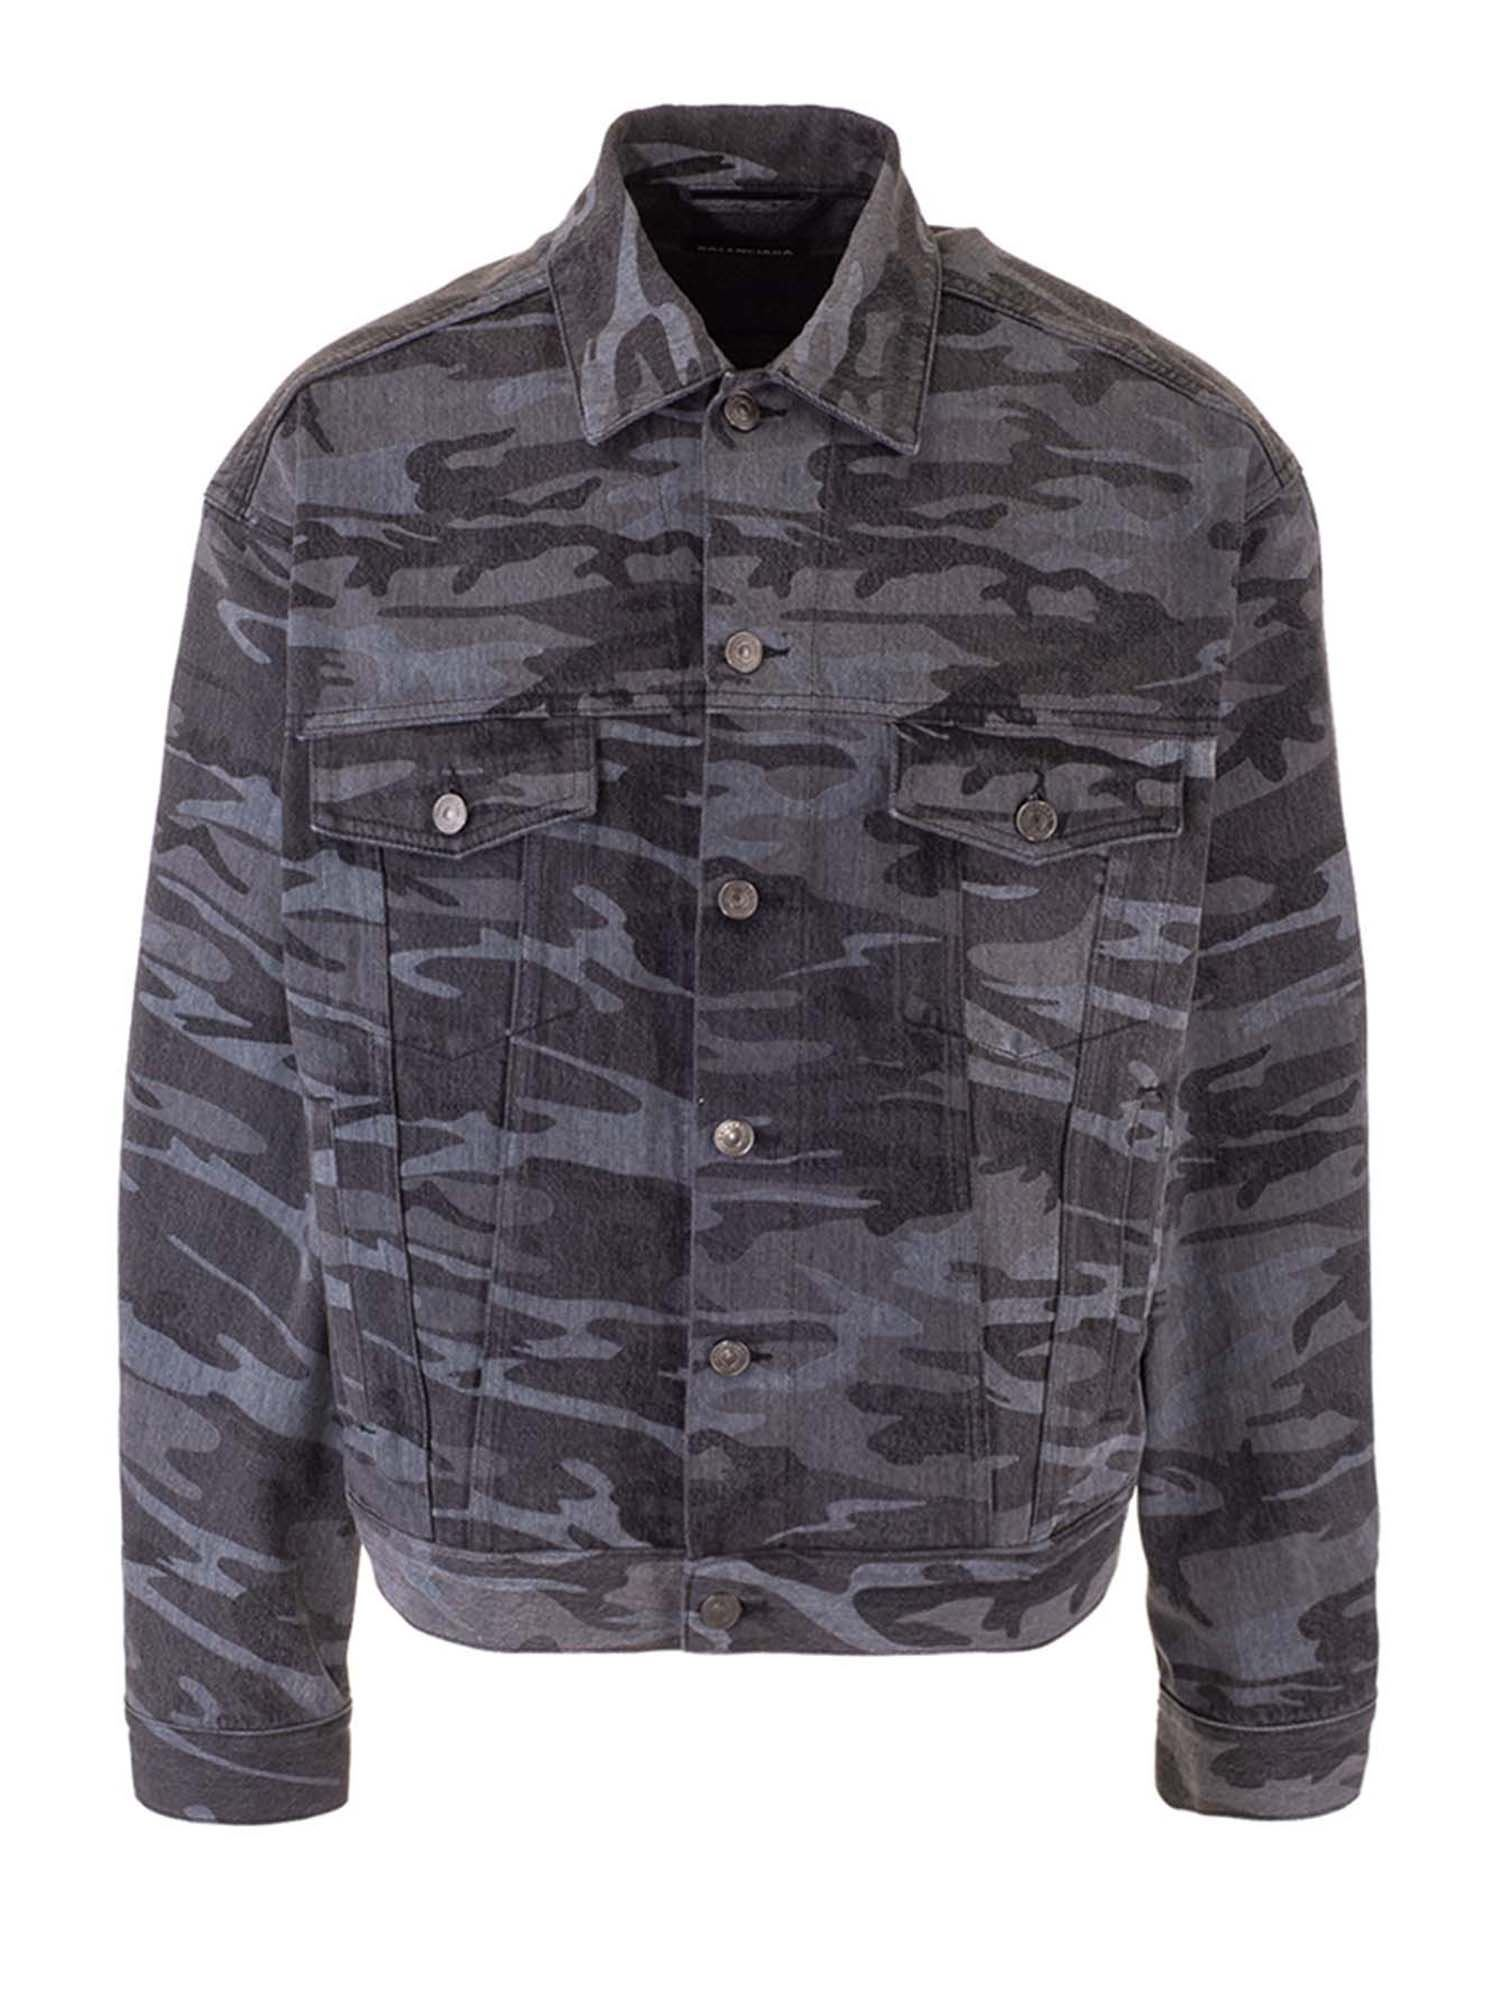 BALENCIAGA CAMOUFLAGE DENIM JACKET IN BLACK